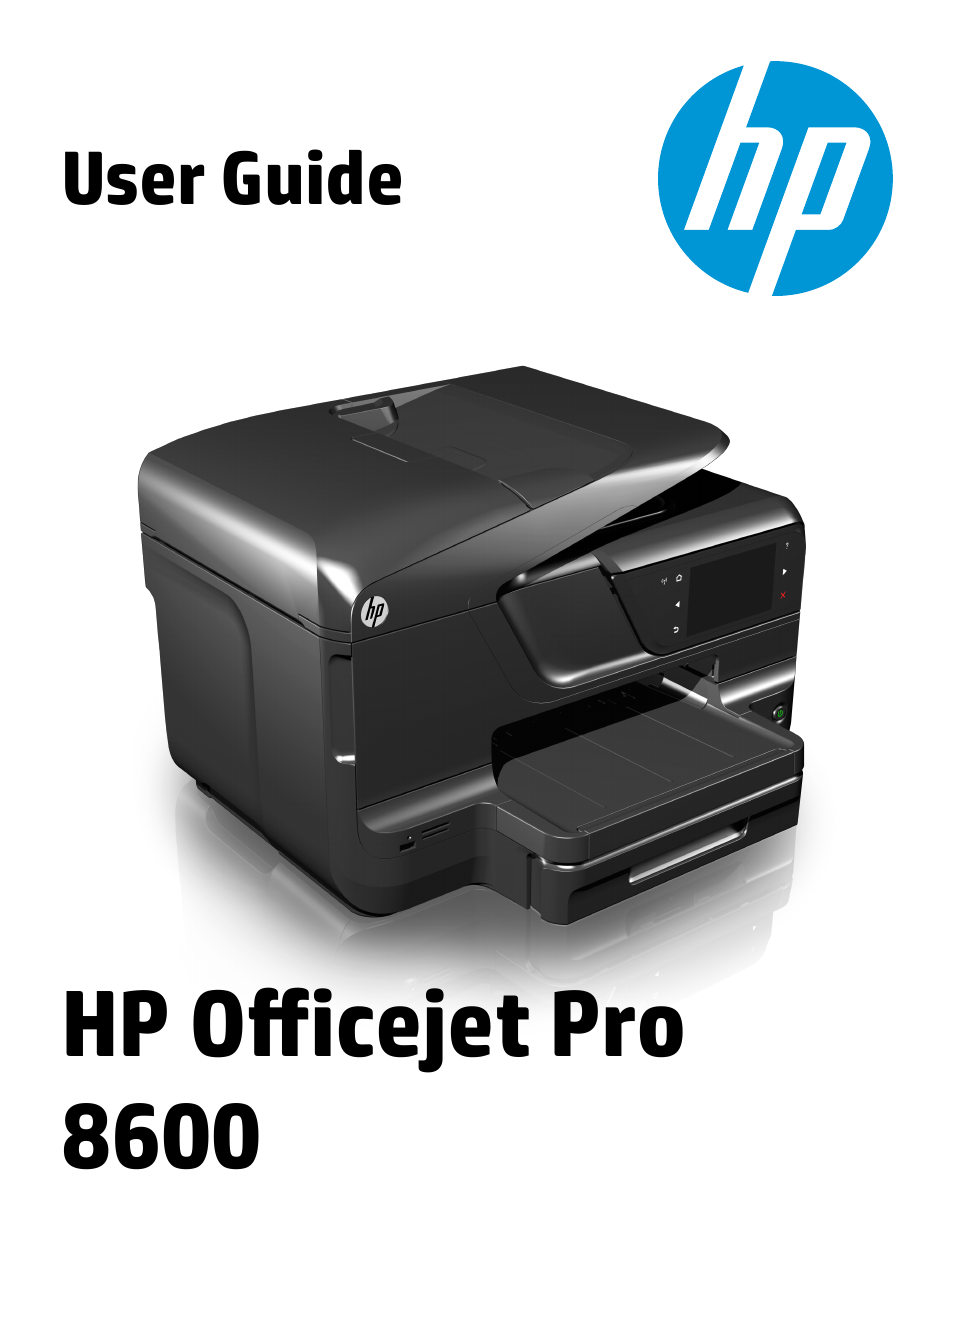 hp officejet pro 8600 user manual online user manual u2022 rh pandadigital co hp officejet pro k8600 manual service hp officejet k8600 manual